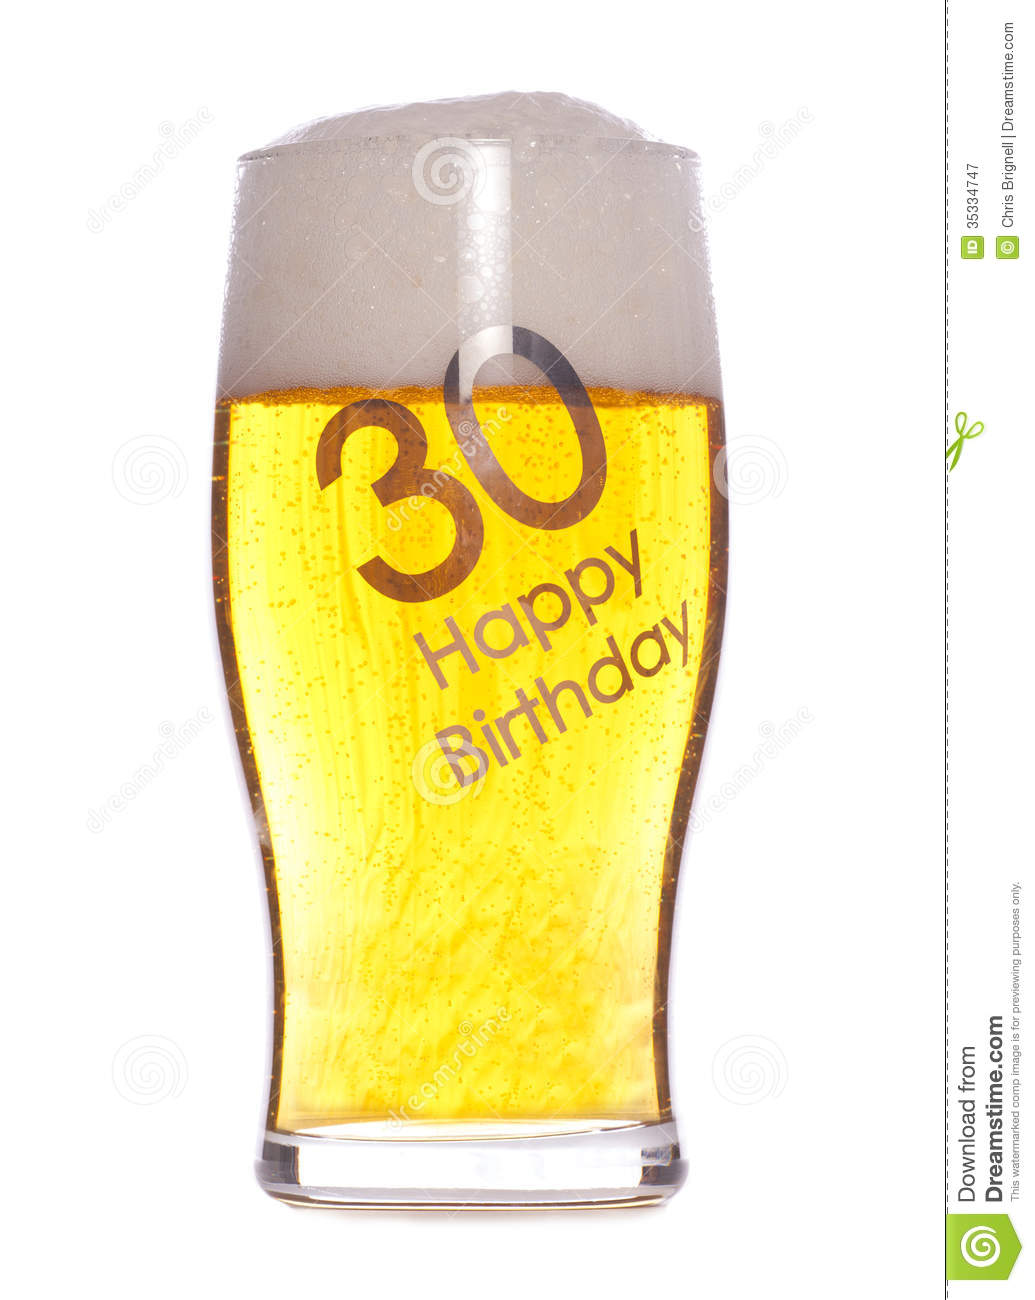 30th birthday clip art images ; th-birthday-beer-studio-cutout-35334747